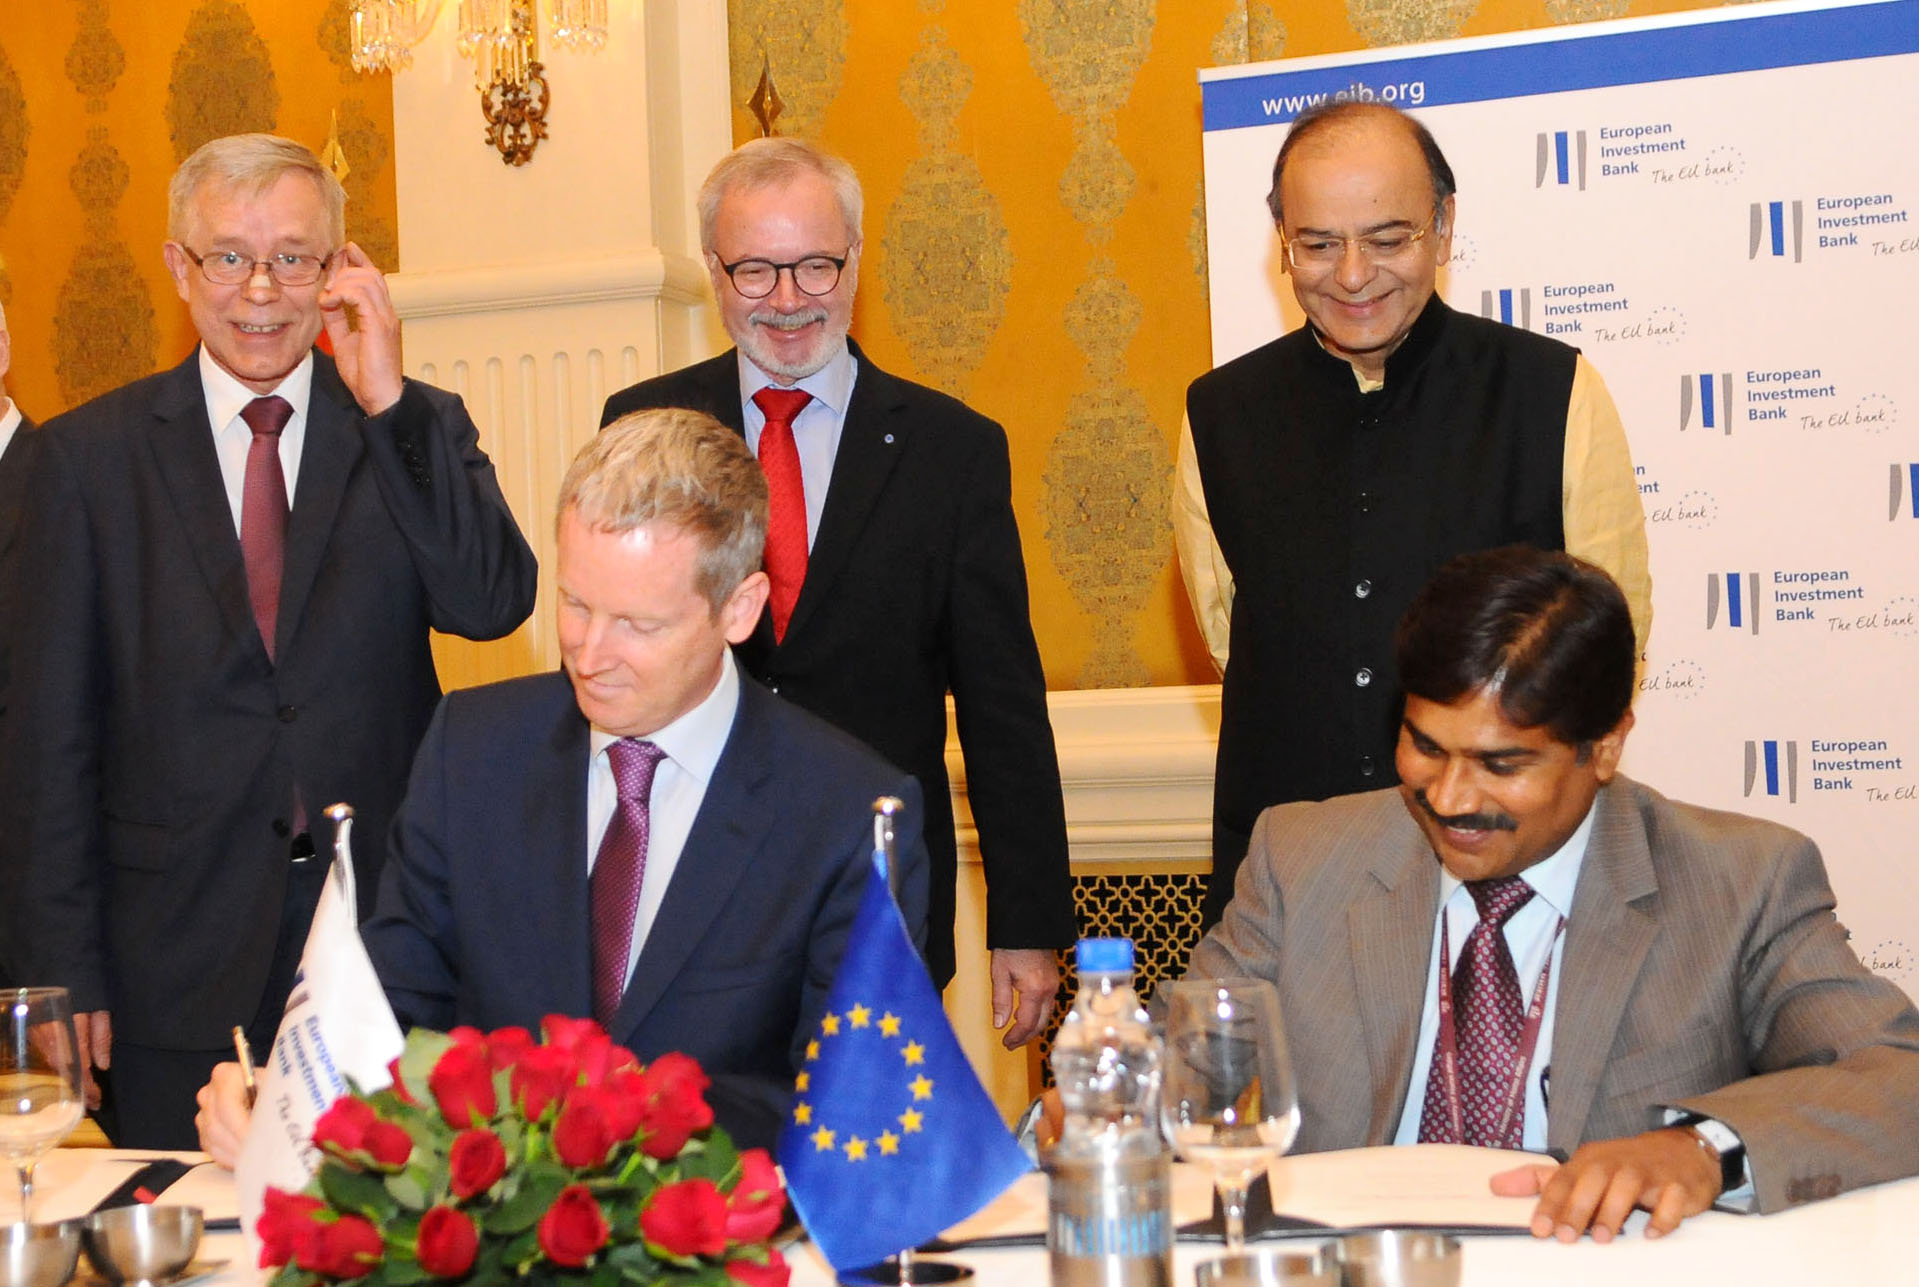 Union Minister for Finance and Corporate Affairs Arun Jaitley and President, European Investment Bank (EIB), Dr Werner Hoyer smile as the look over the signing ceremony of opening of the EIB's India office in New Delhi